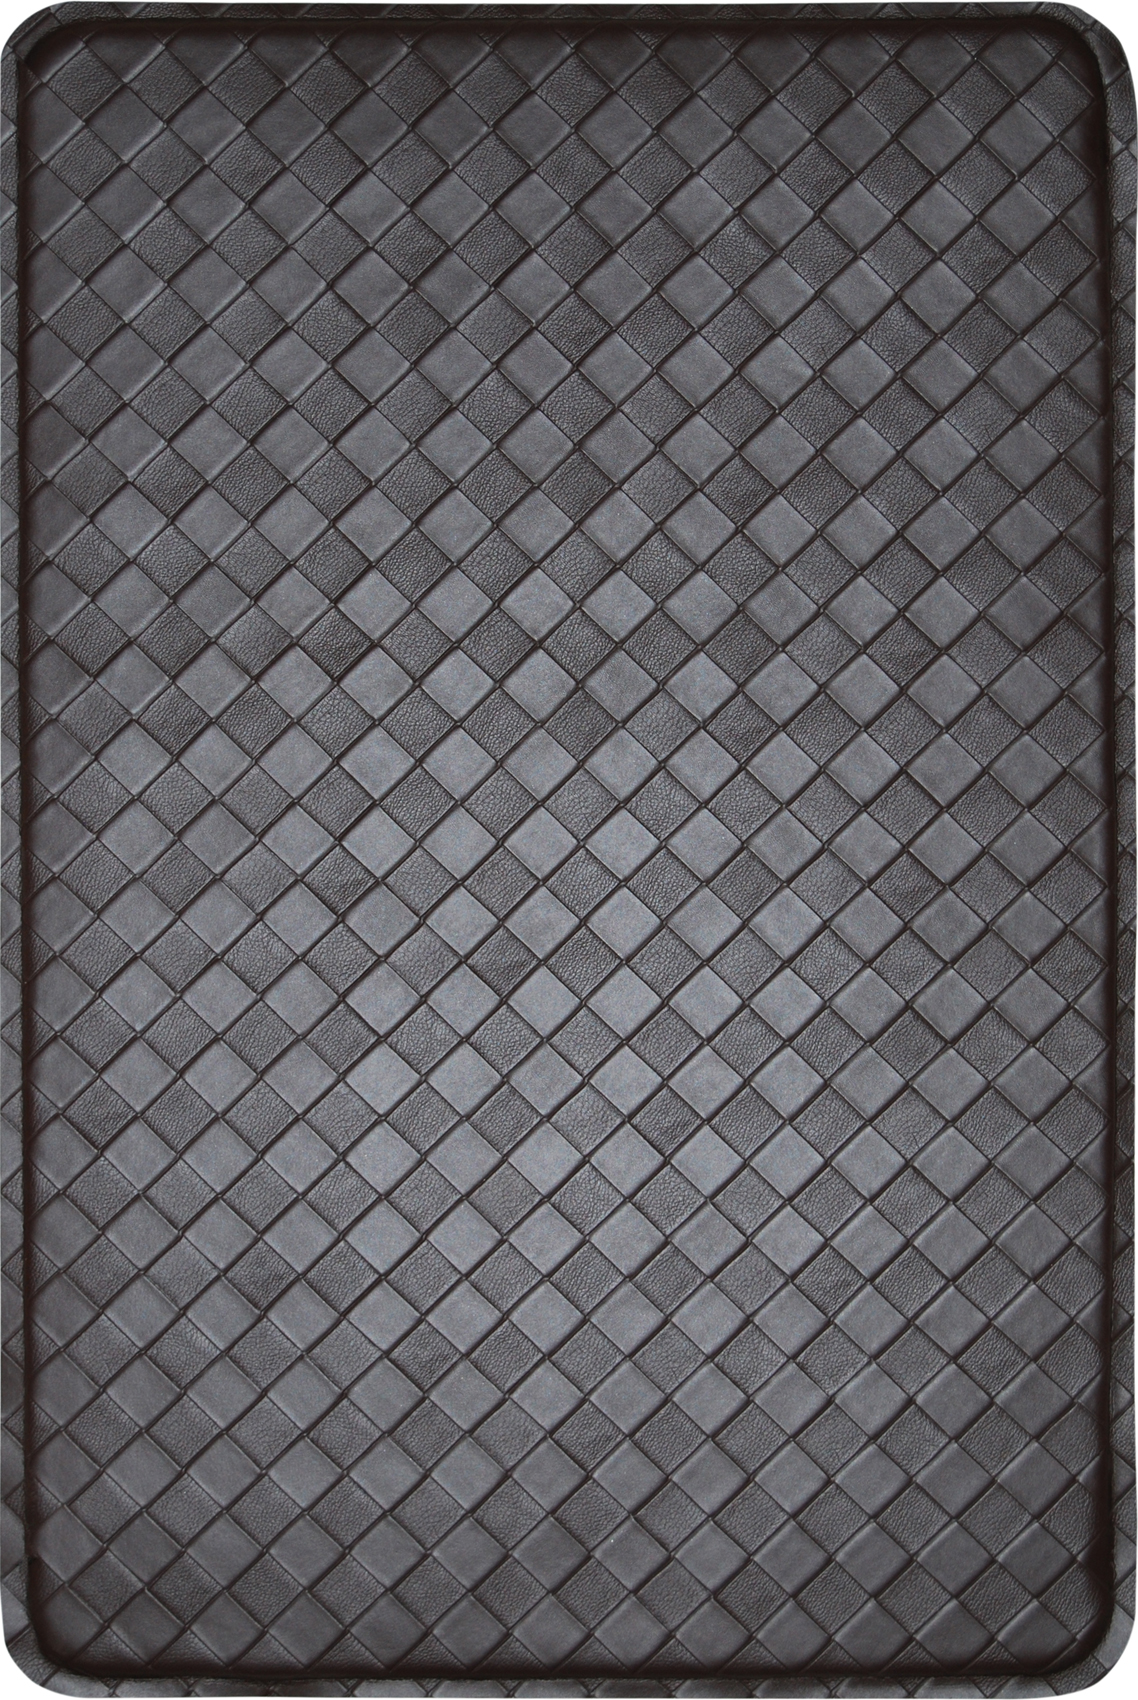 Anti Fatigue Kitchen Floor Mat Modern Indoor Cushion Kitchen Rug Anti Fatigue Floor Mat Actual